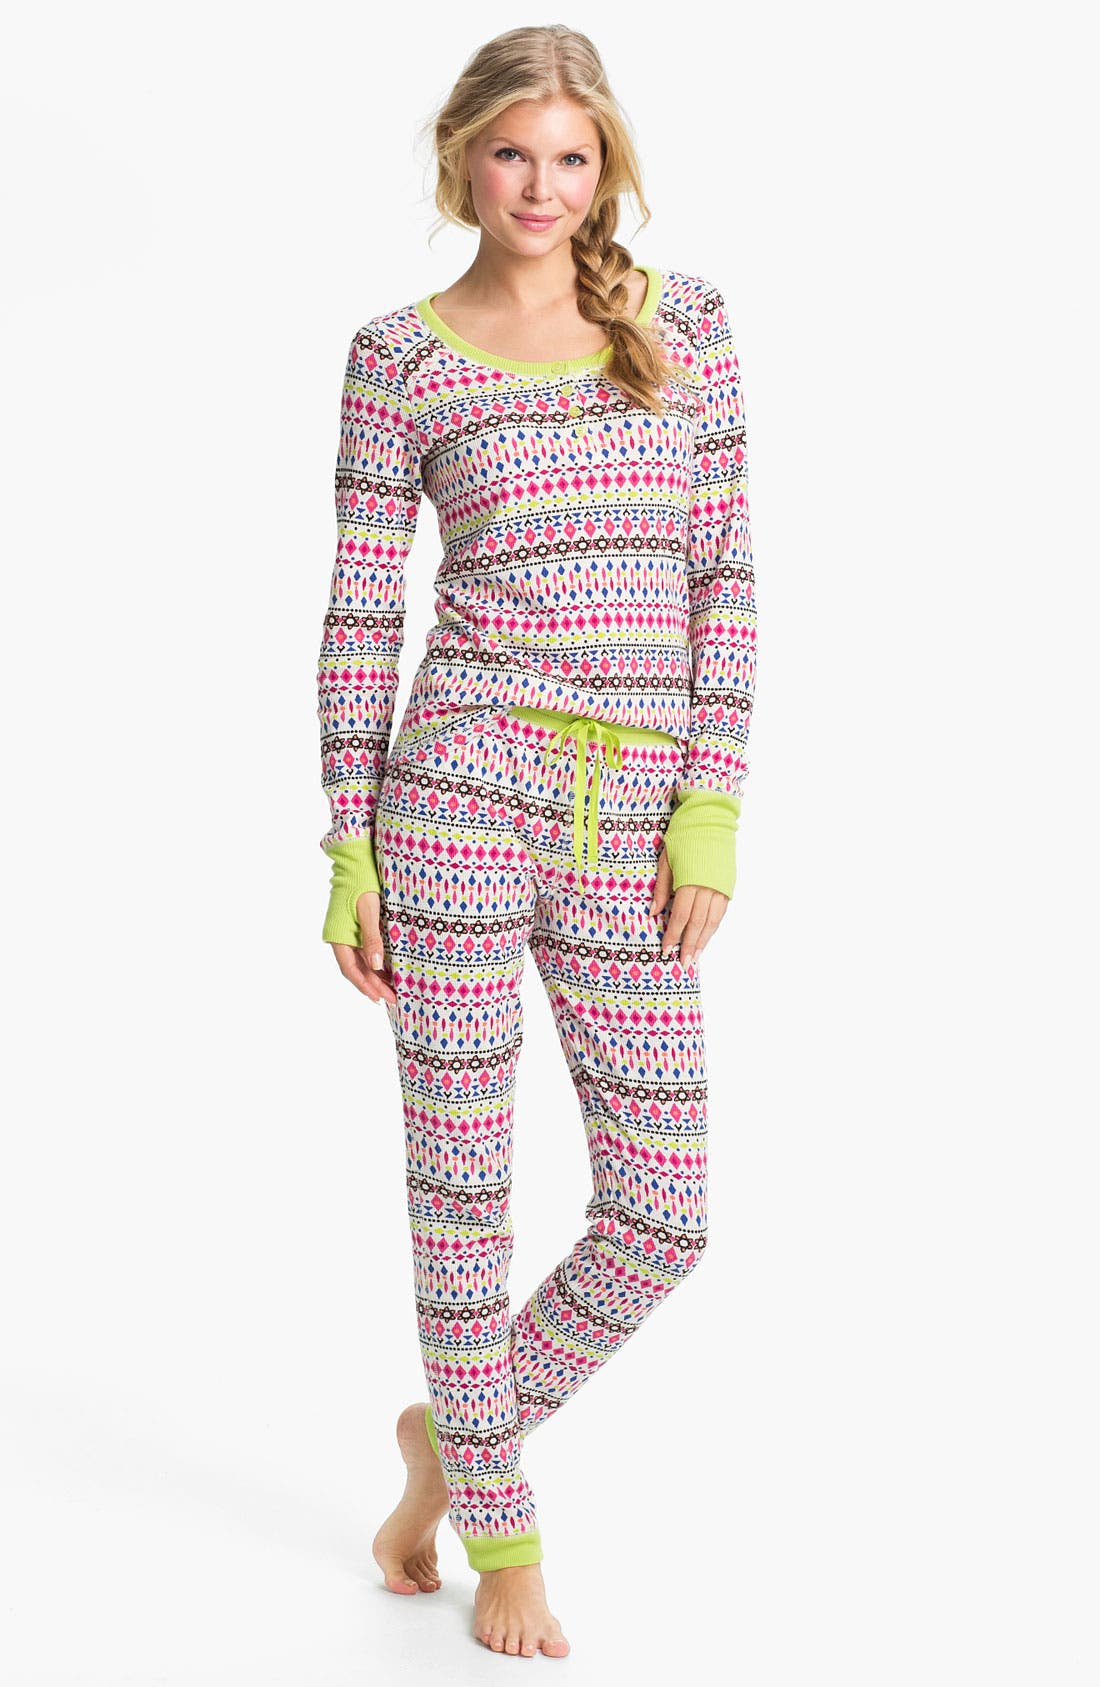 Alternate Image 1 Selected - Steve Madden 'Cozy Up' Print Thermal Pajamas